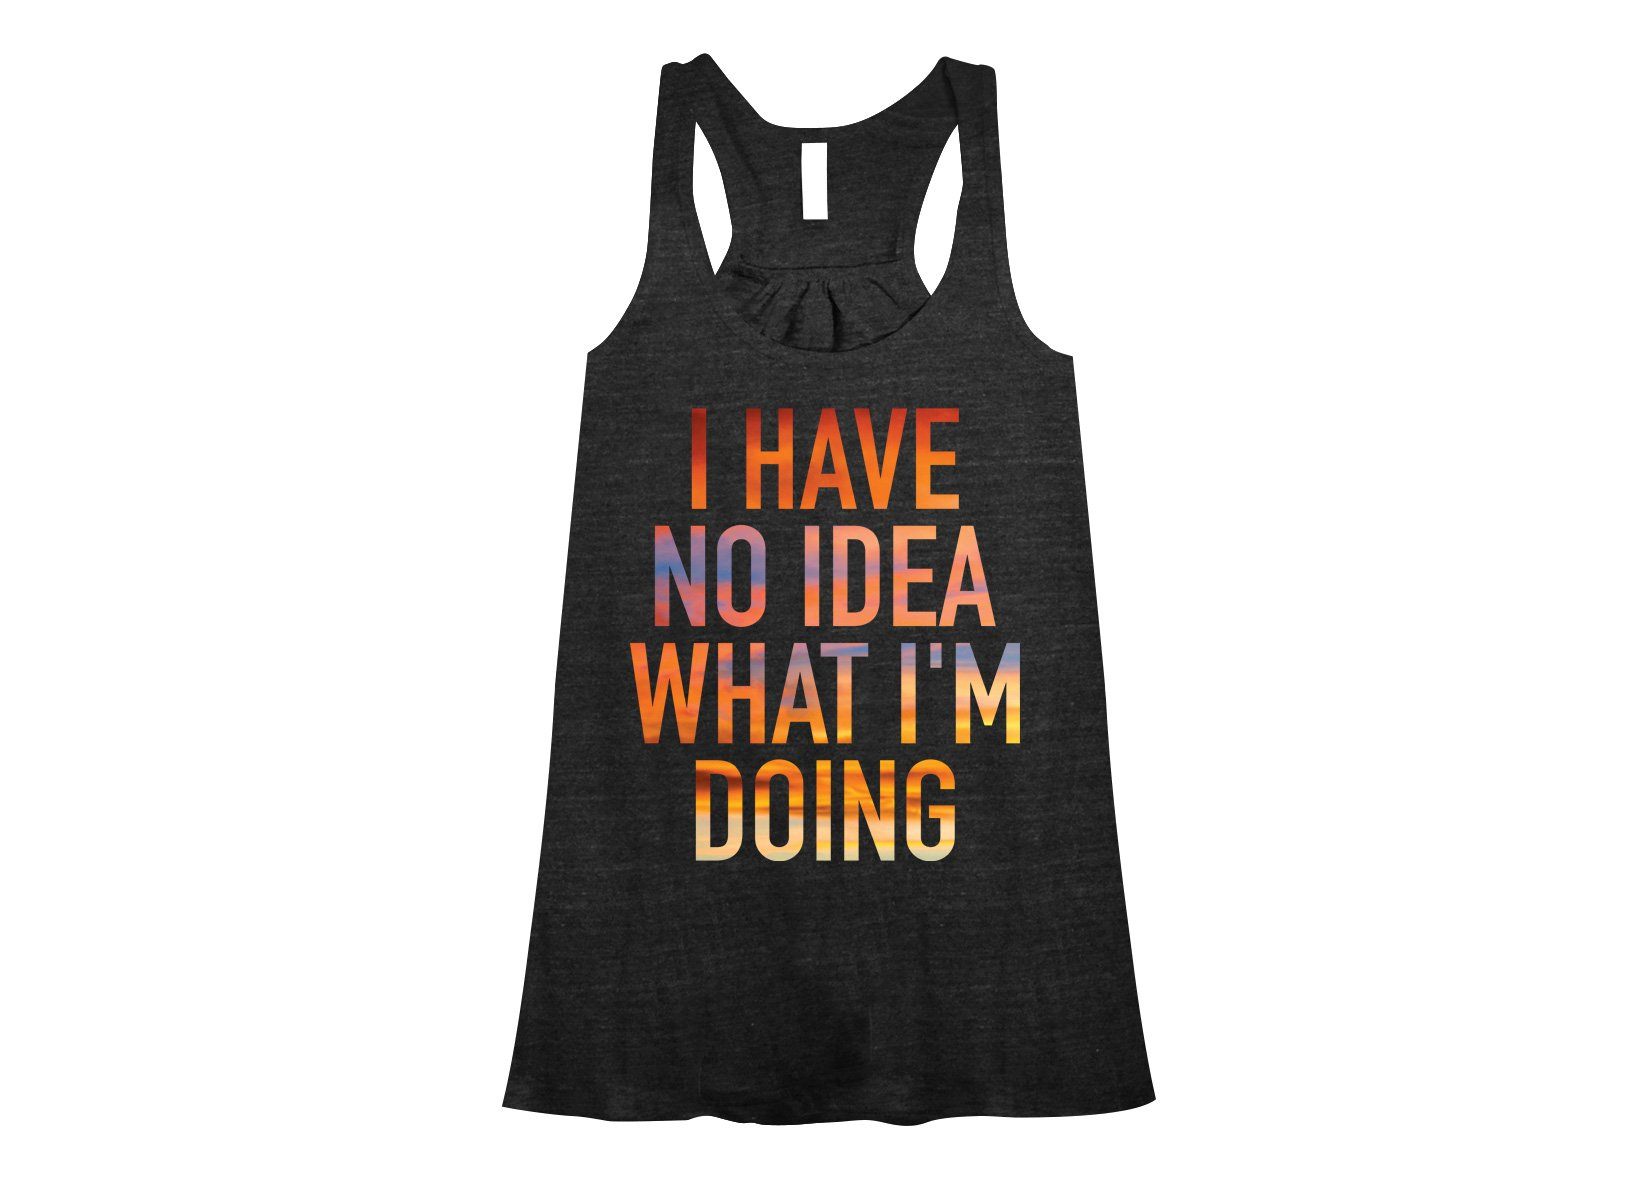 I Have No Idea What I'm Doing on Womens Tanks T-Shirt